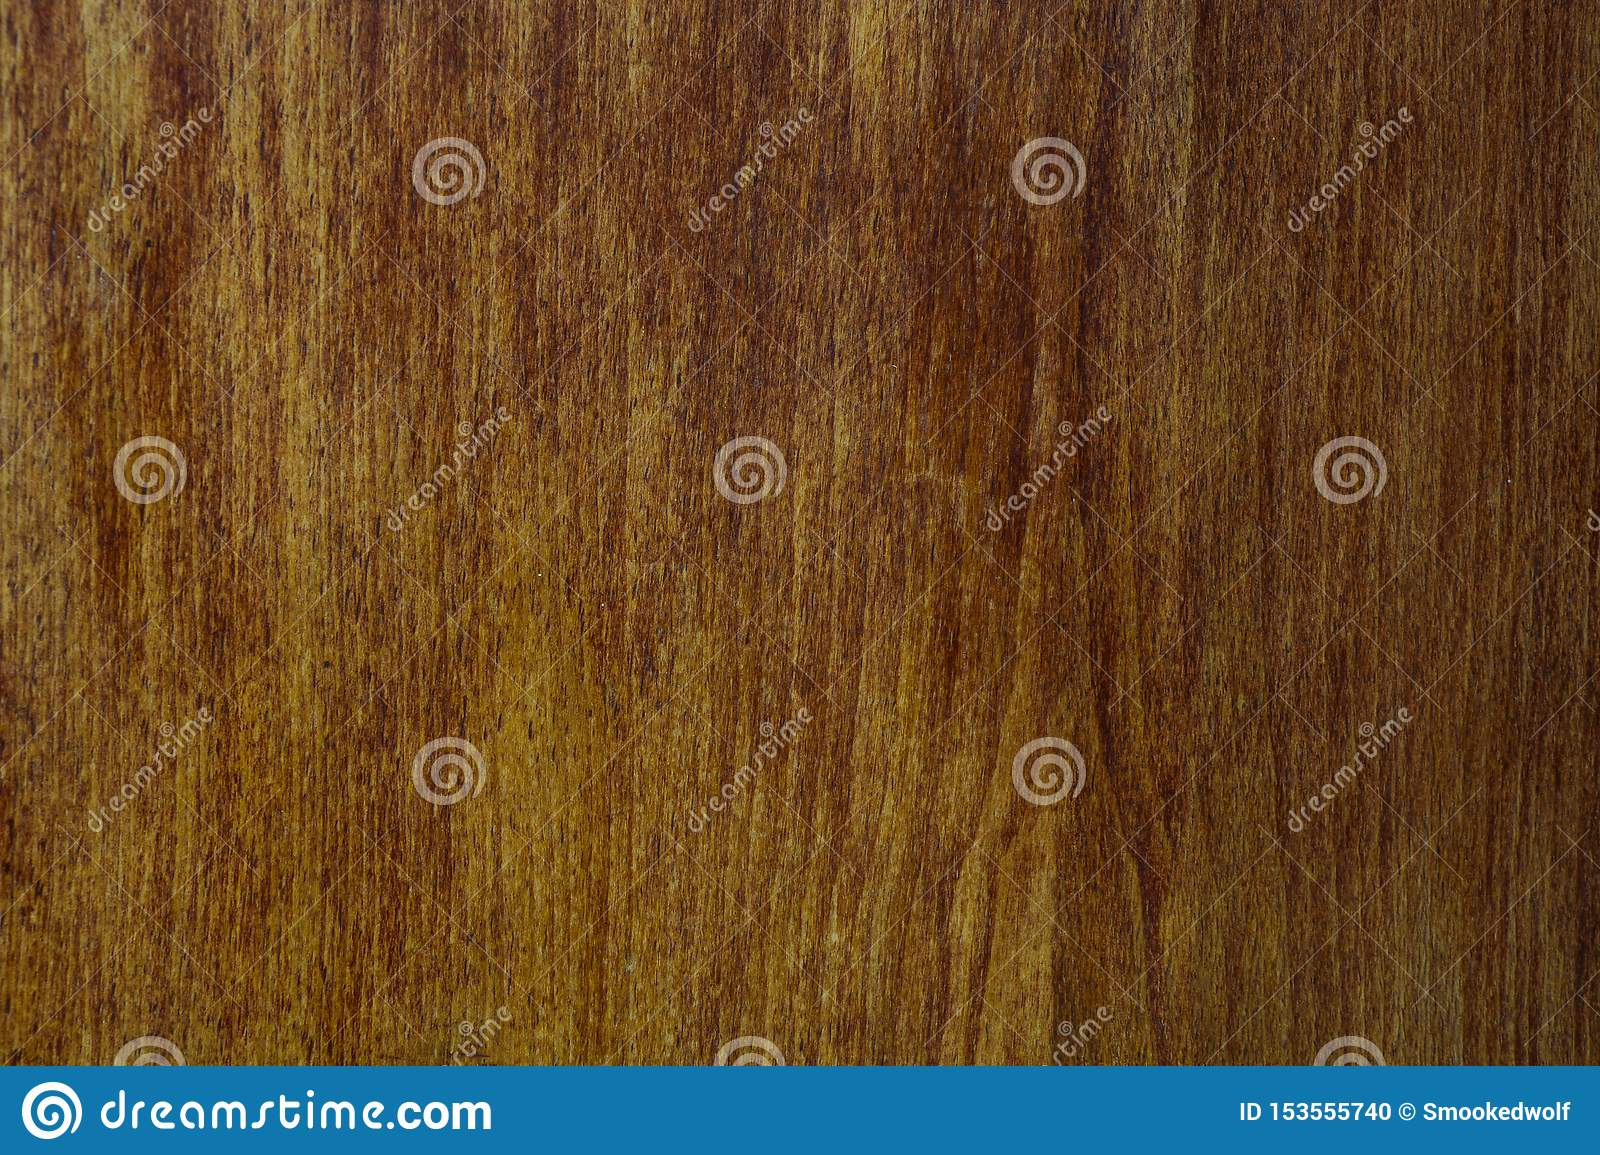 Wooden background brown wood texture empty horizontal surface. place for design